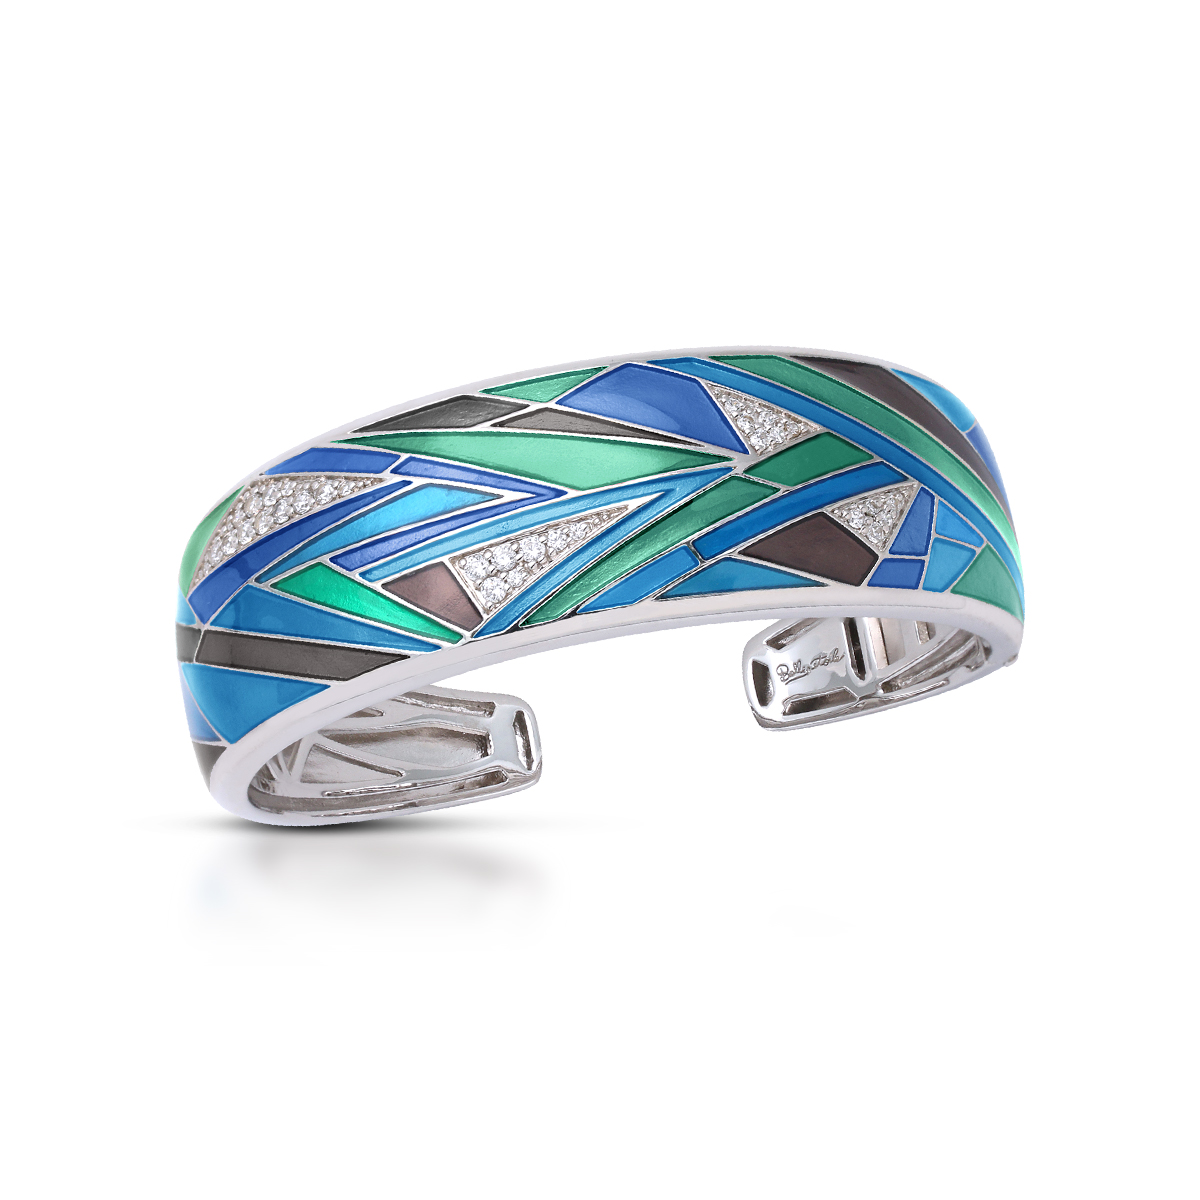 Belle Etoile - Chromatica_Blue_and_Teal_Bangle_07022010201.jpg - brand name designer jewelry in Morgantown, West Virginia